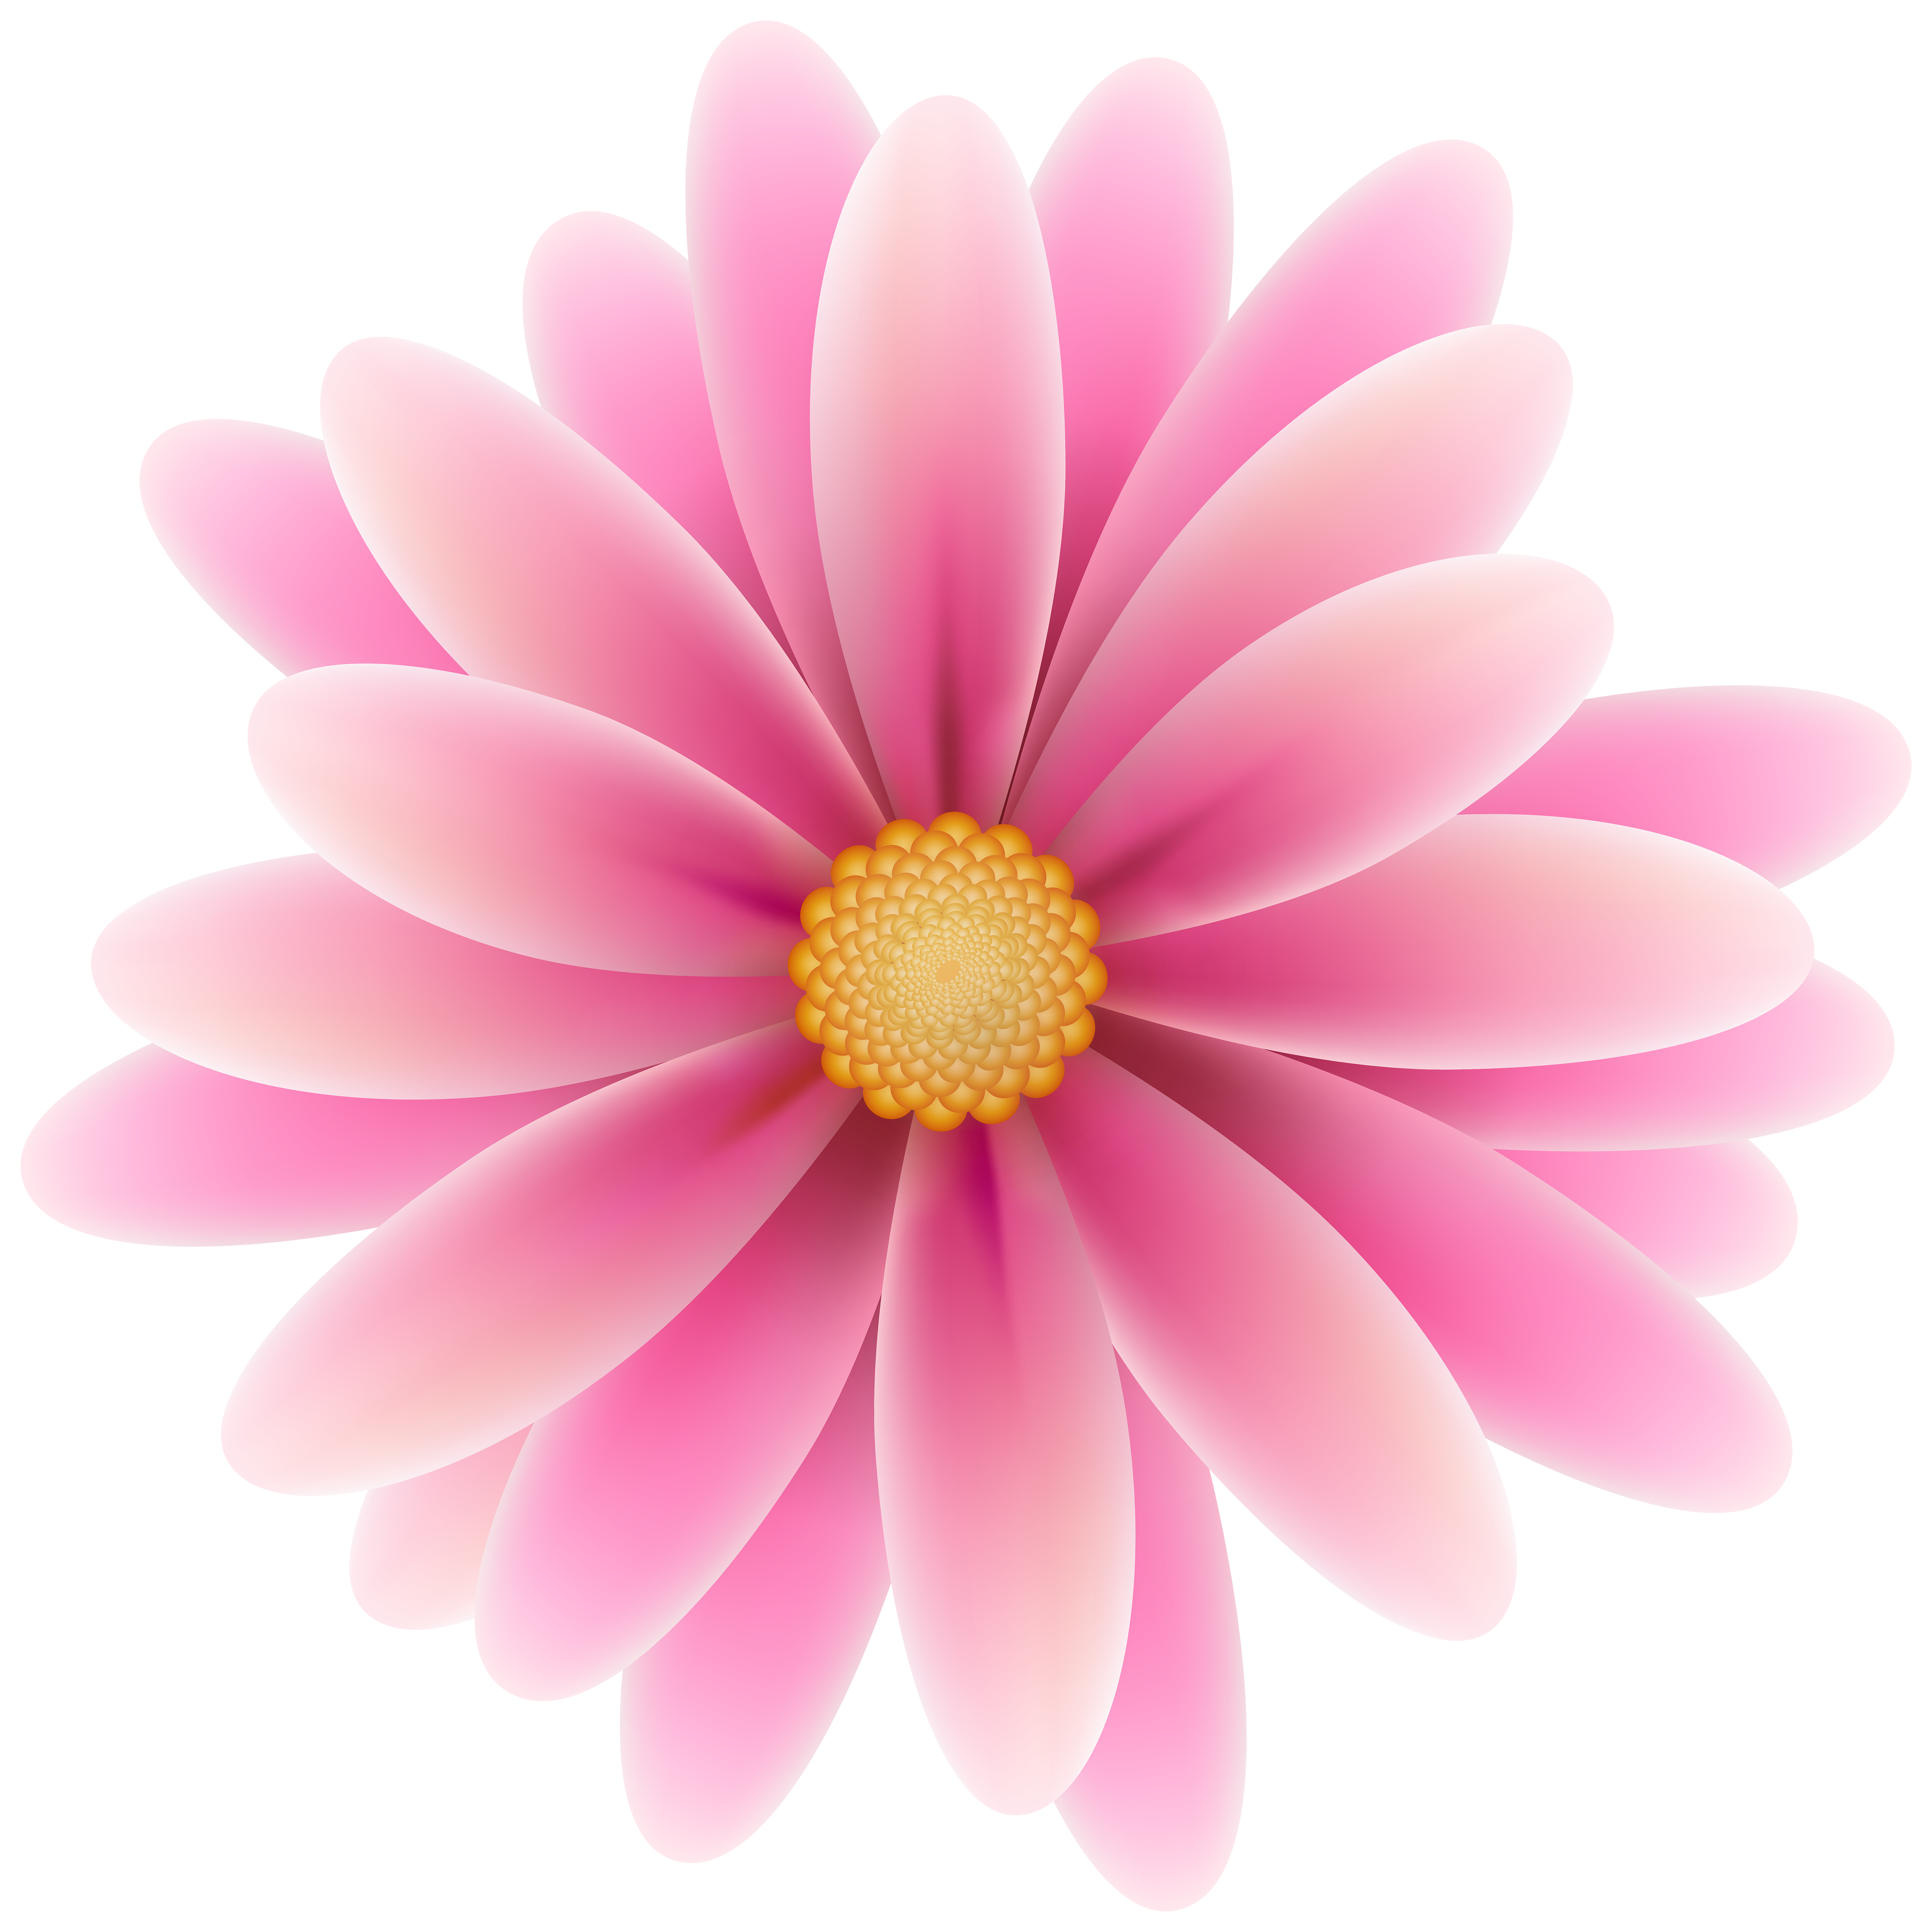 Pink Flower clipart Yopriceville Quality Art Flower Clip